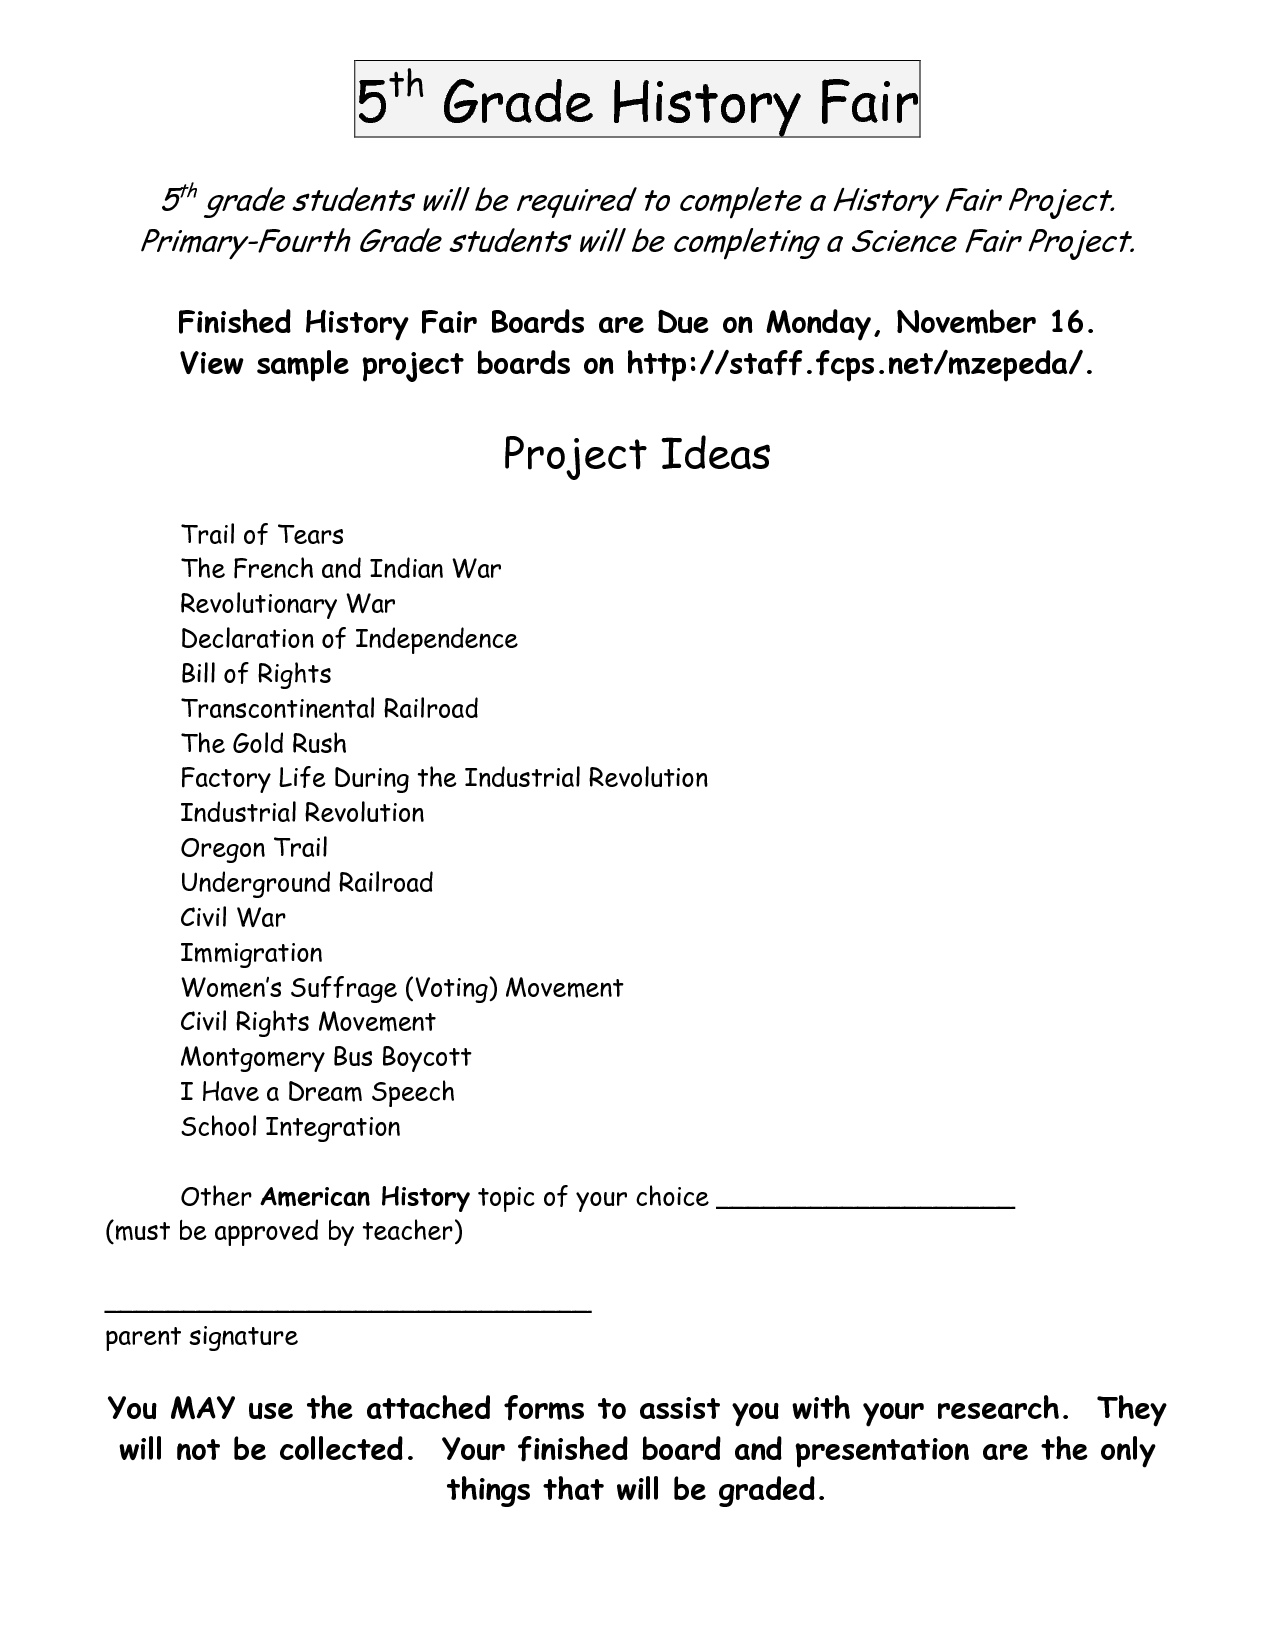 worksheet Social Studies 5th Grade Worksheets 2nd grade social studies worksheets free printables abitlikethis 5th worksheets